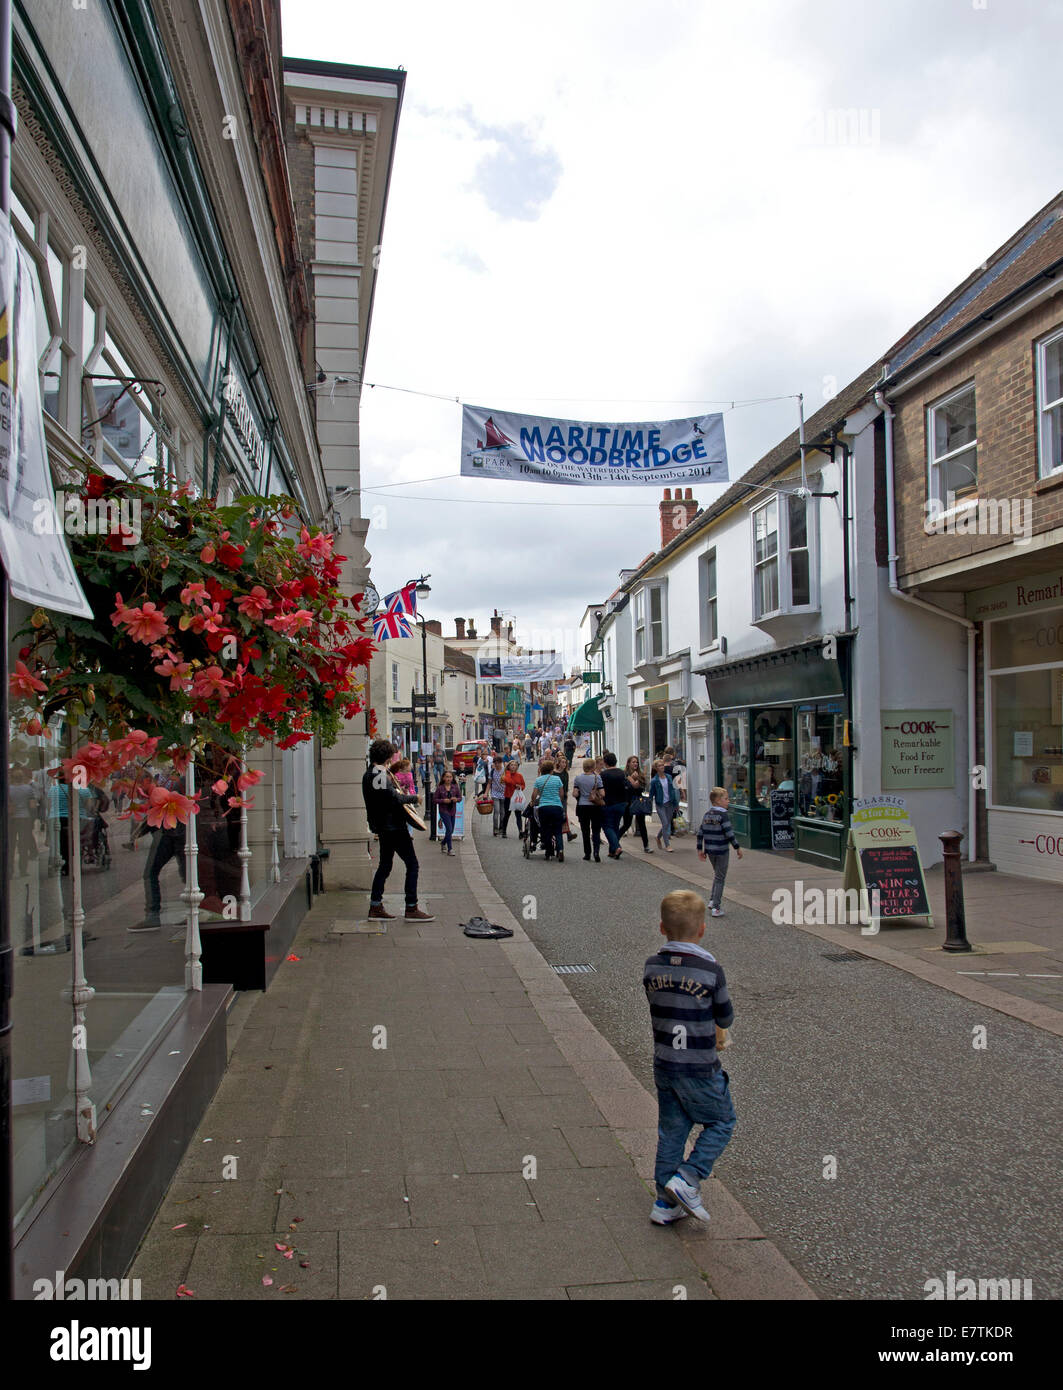 Woodbridge High Street on festival day at the end of summer - Stock Image